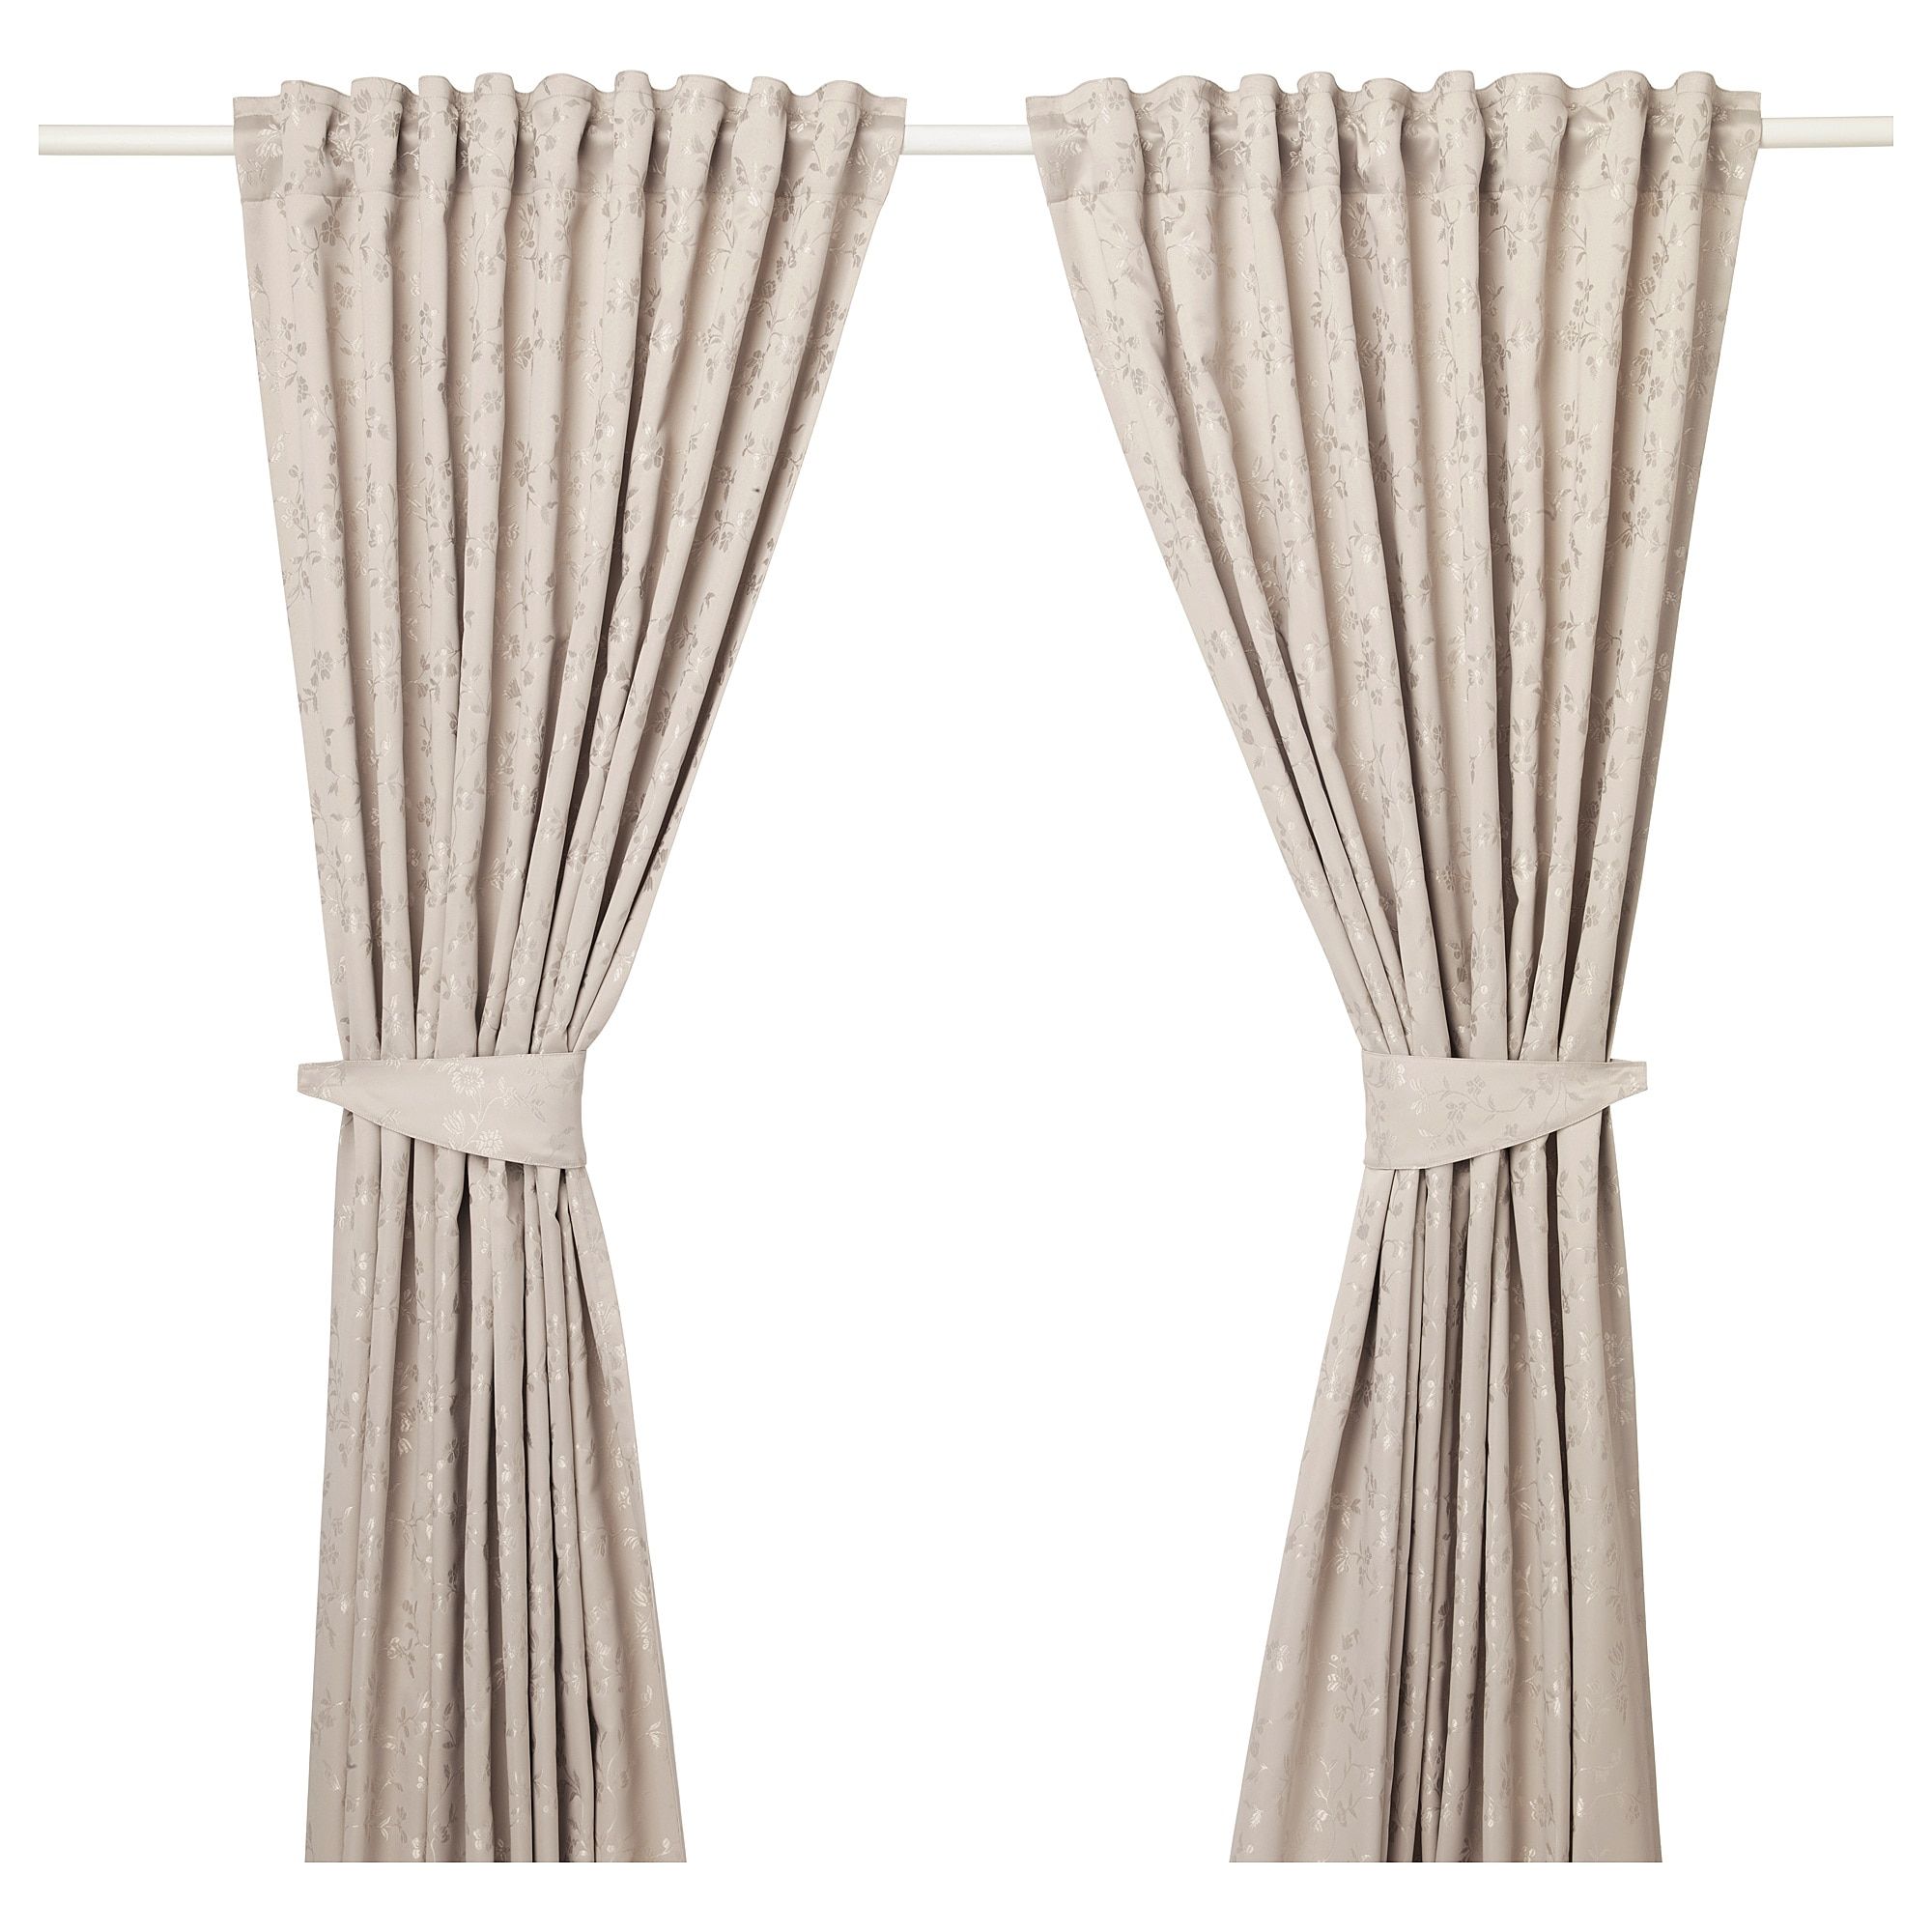 inter ikea systems bv 1999 2018 privacy policy responsible disclosure - Ikea Curtains